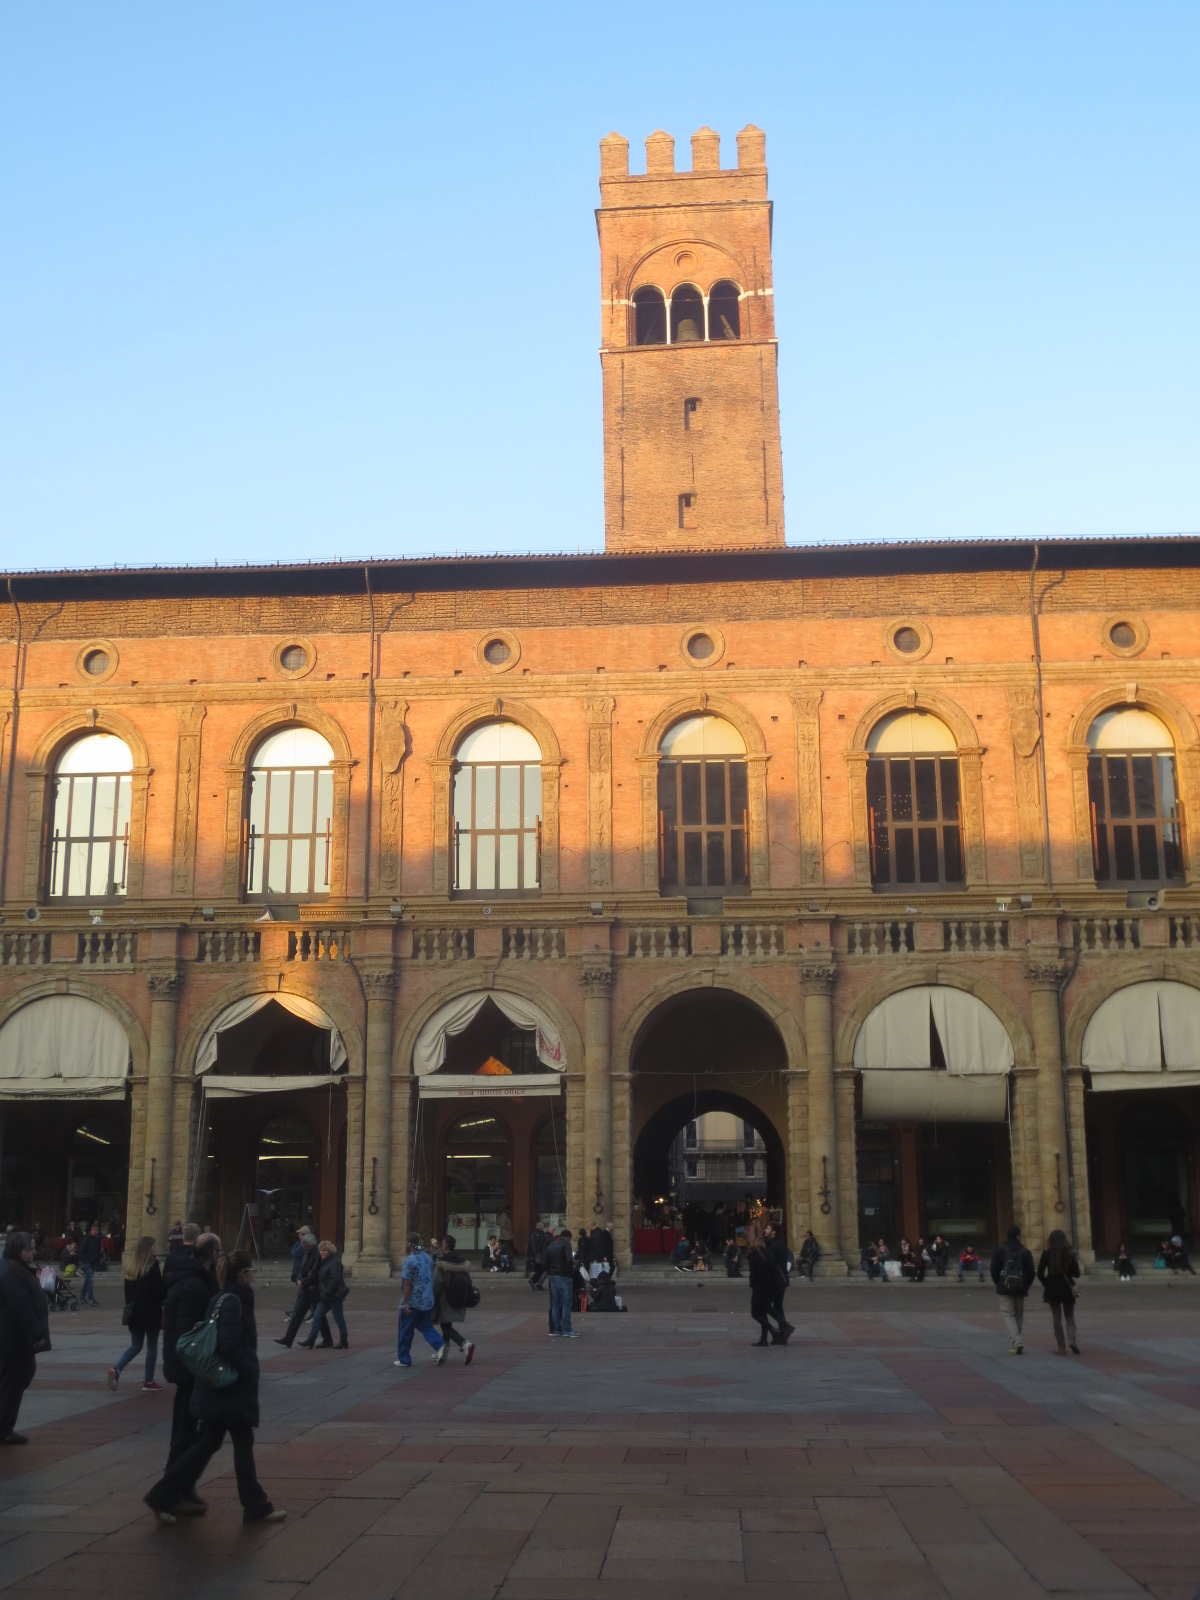 The Best of Bologna - Torre dell'Arengo